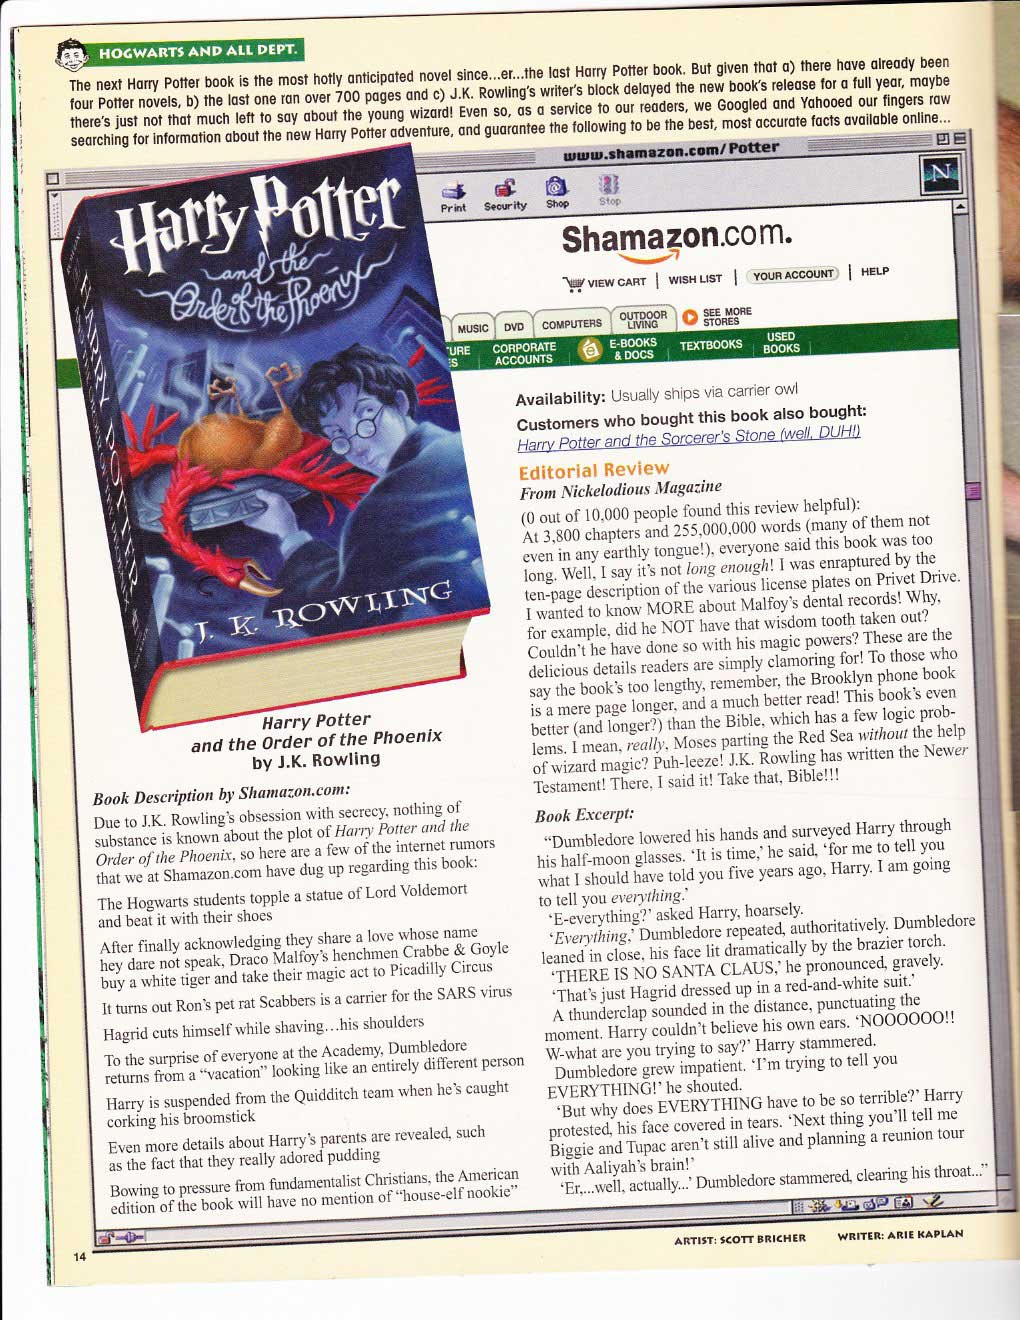 Shamazon Harry Potter page